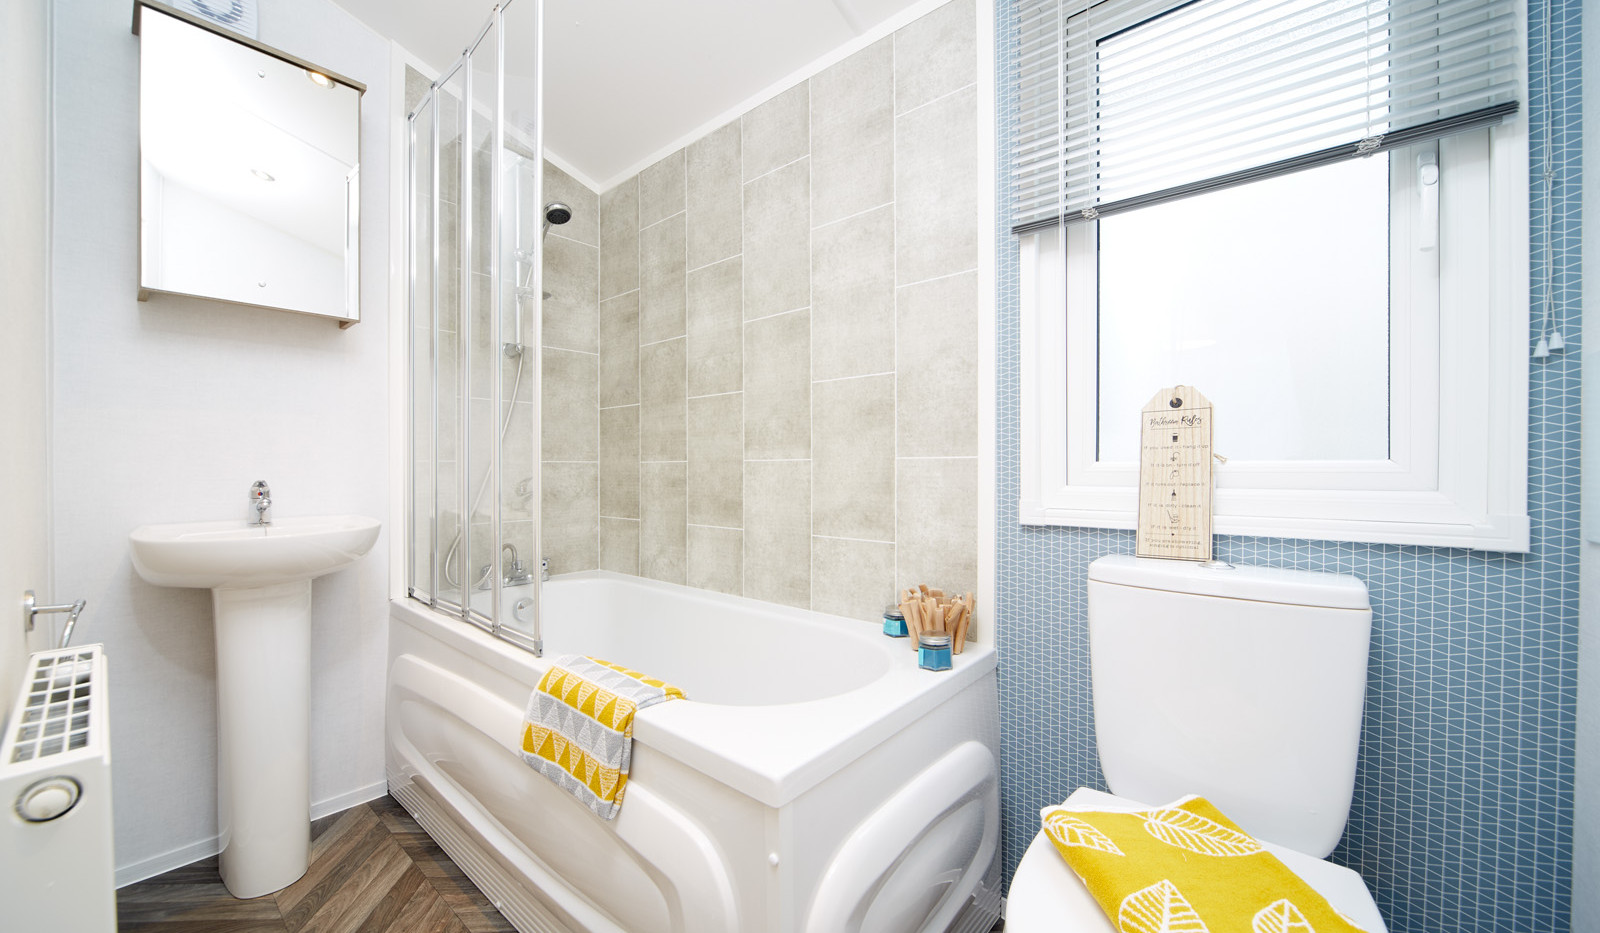 Amethyst Holiday Home Property Investment Bathoom